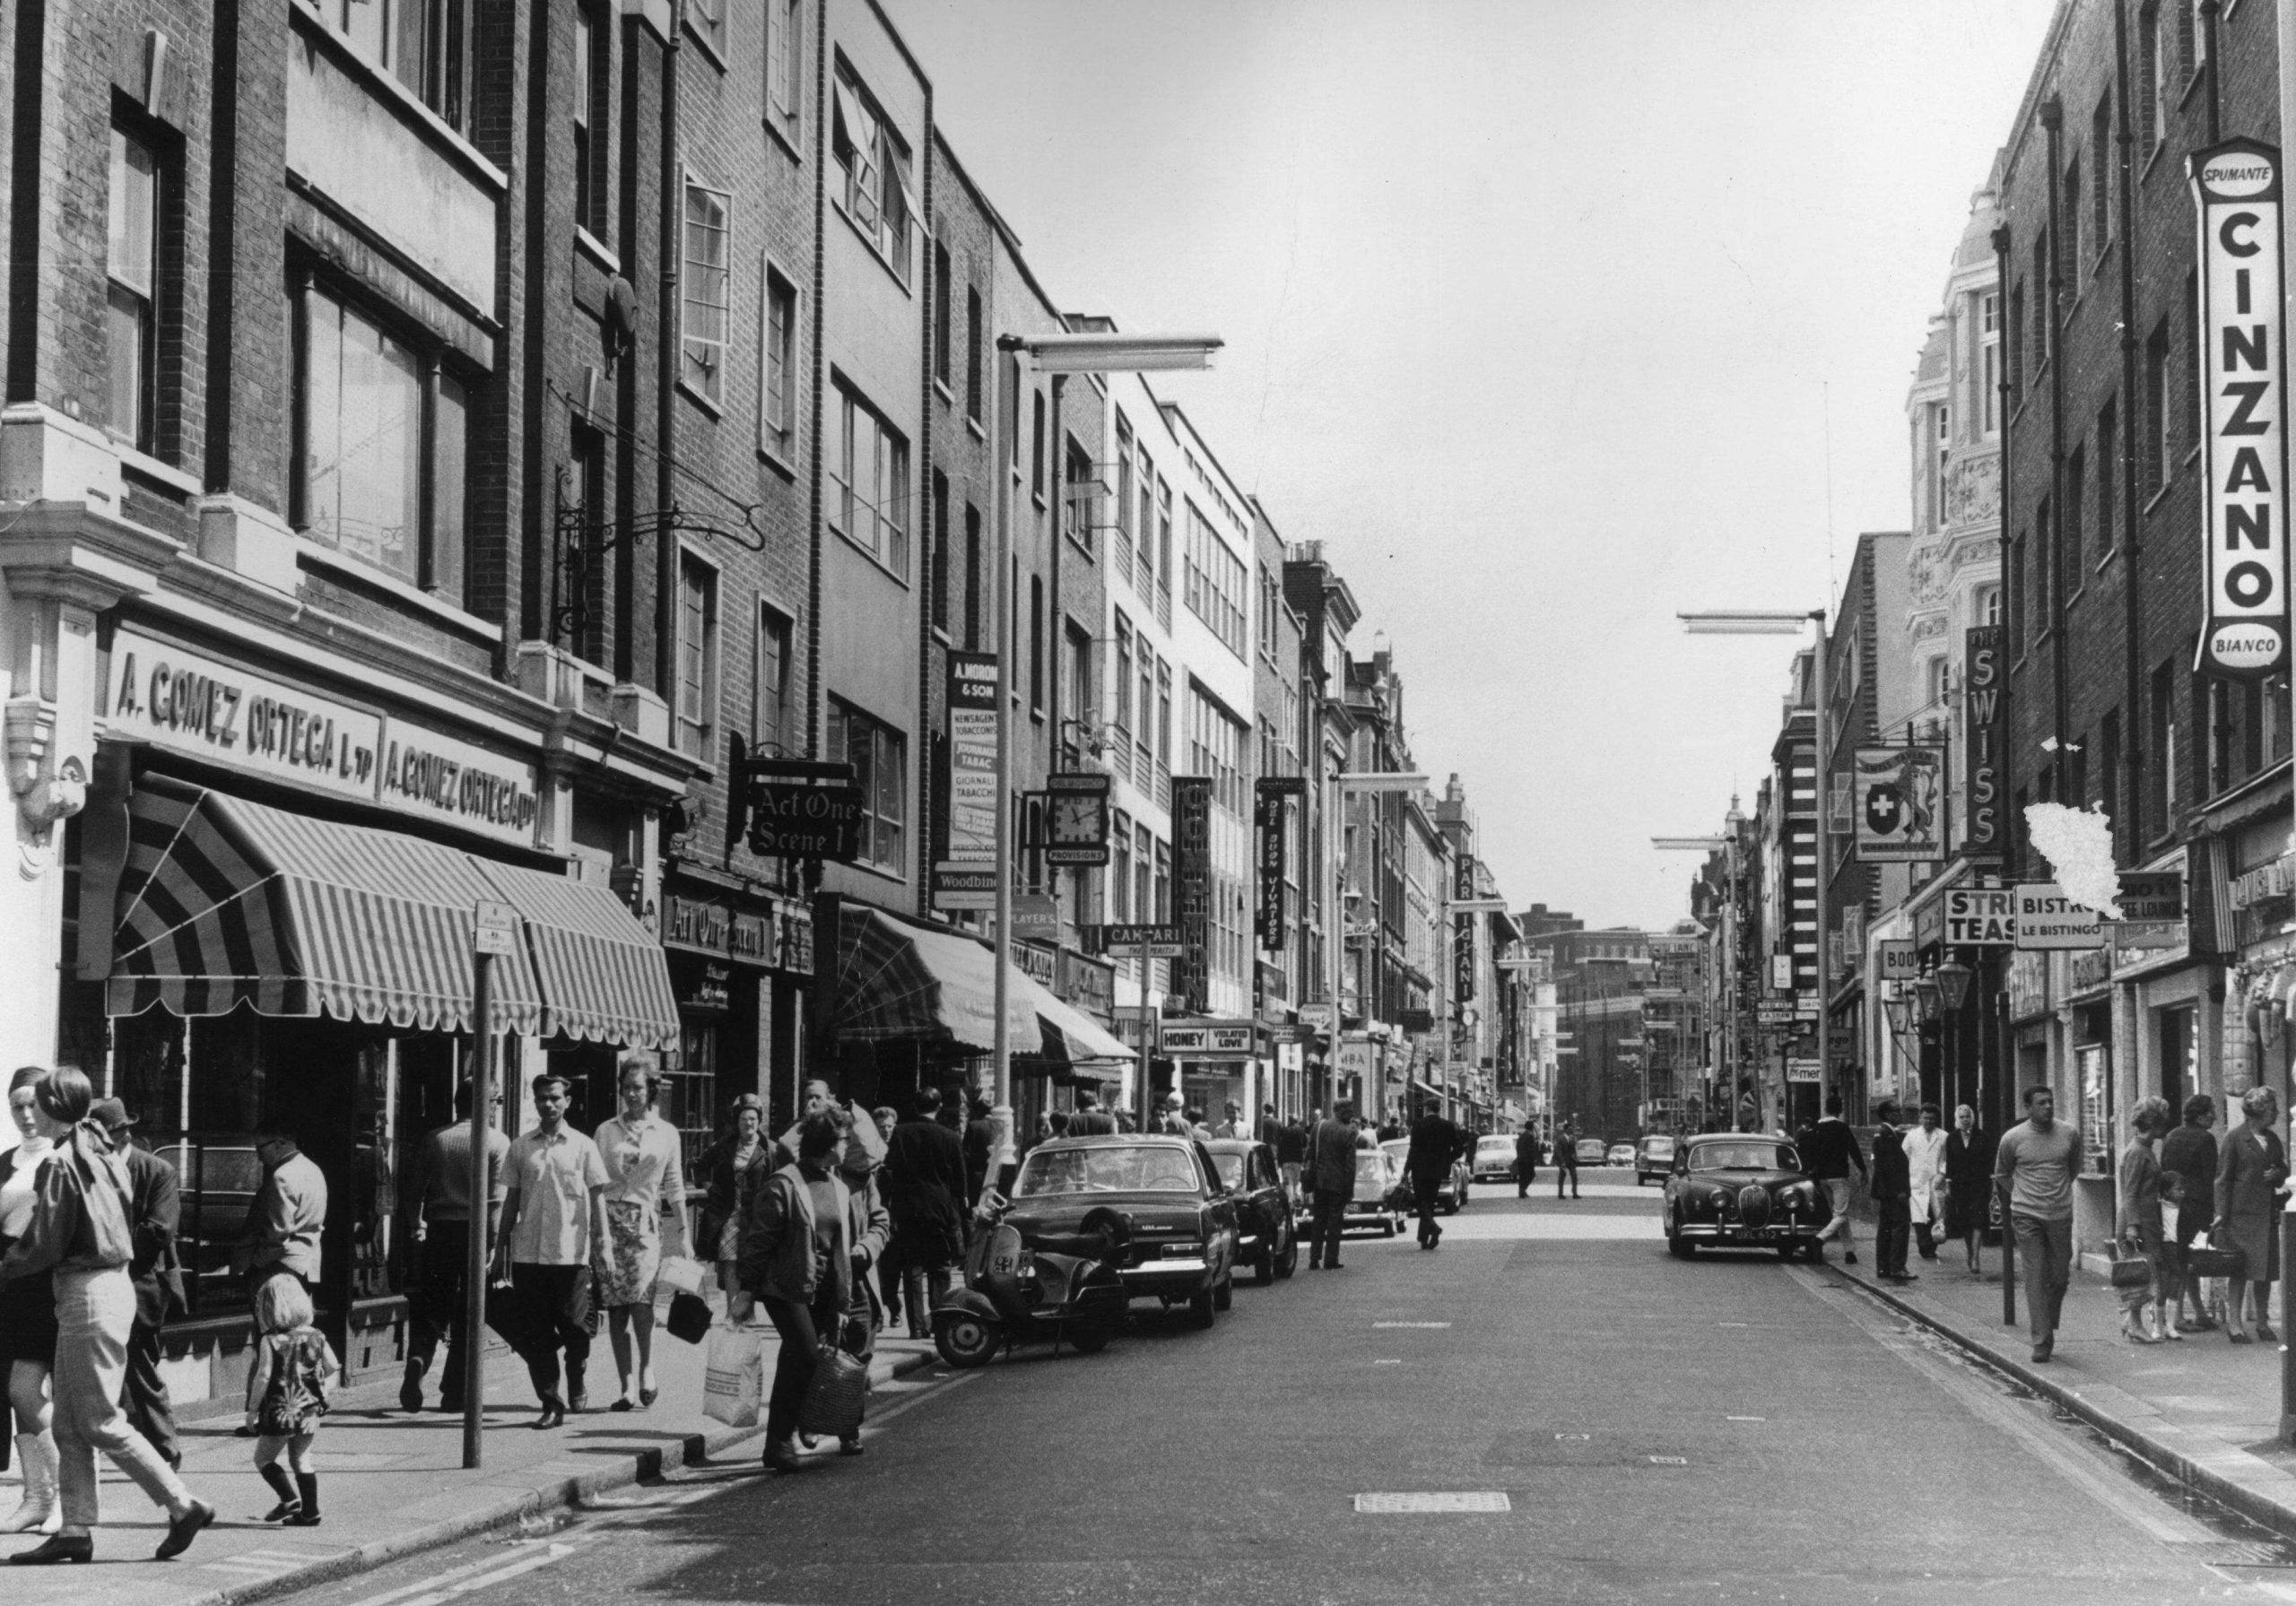 If you felt small, broke and bitter, there was a man in Soho who put you right – but he's gone